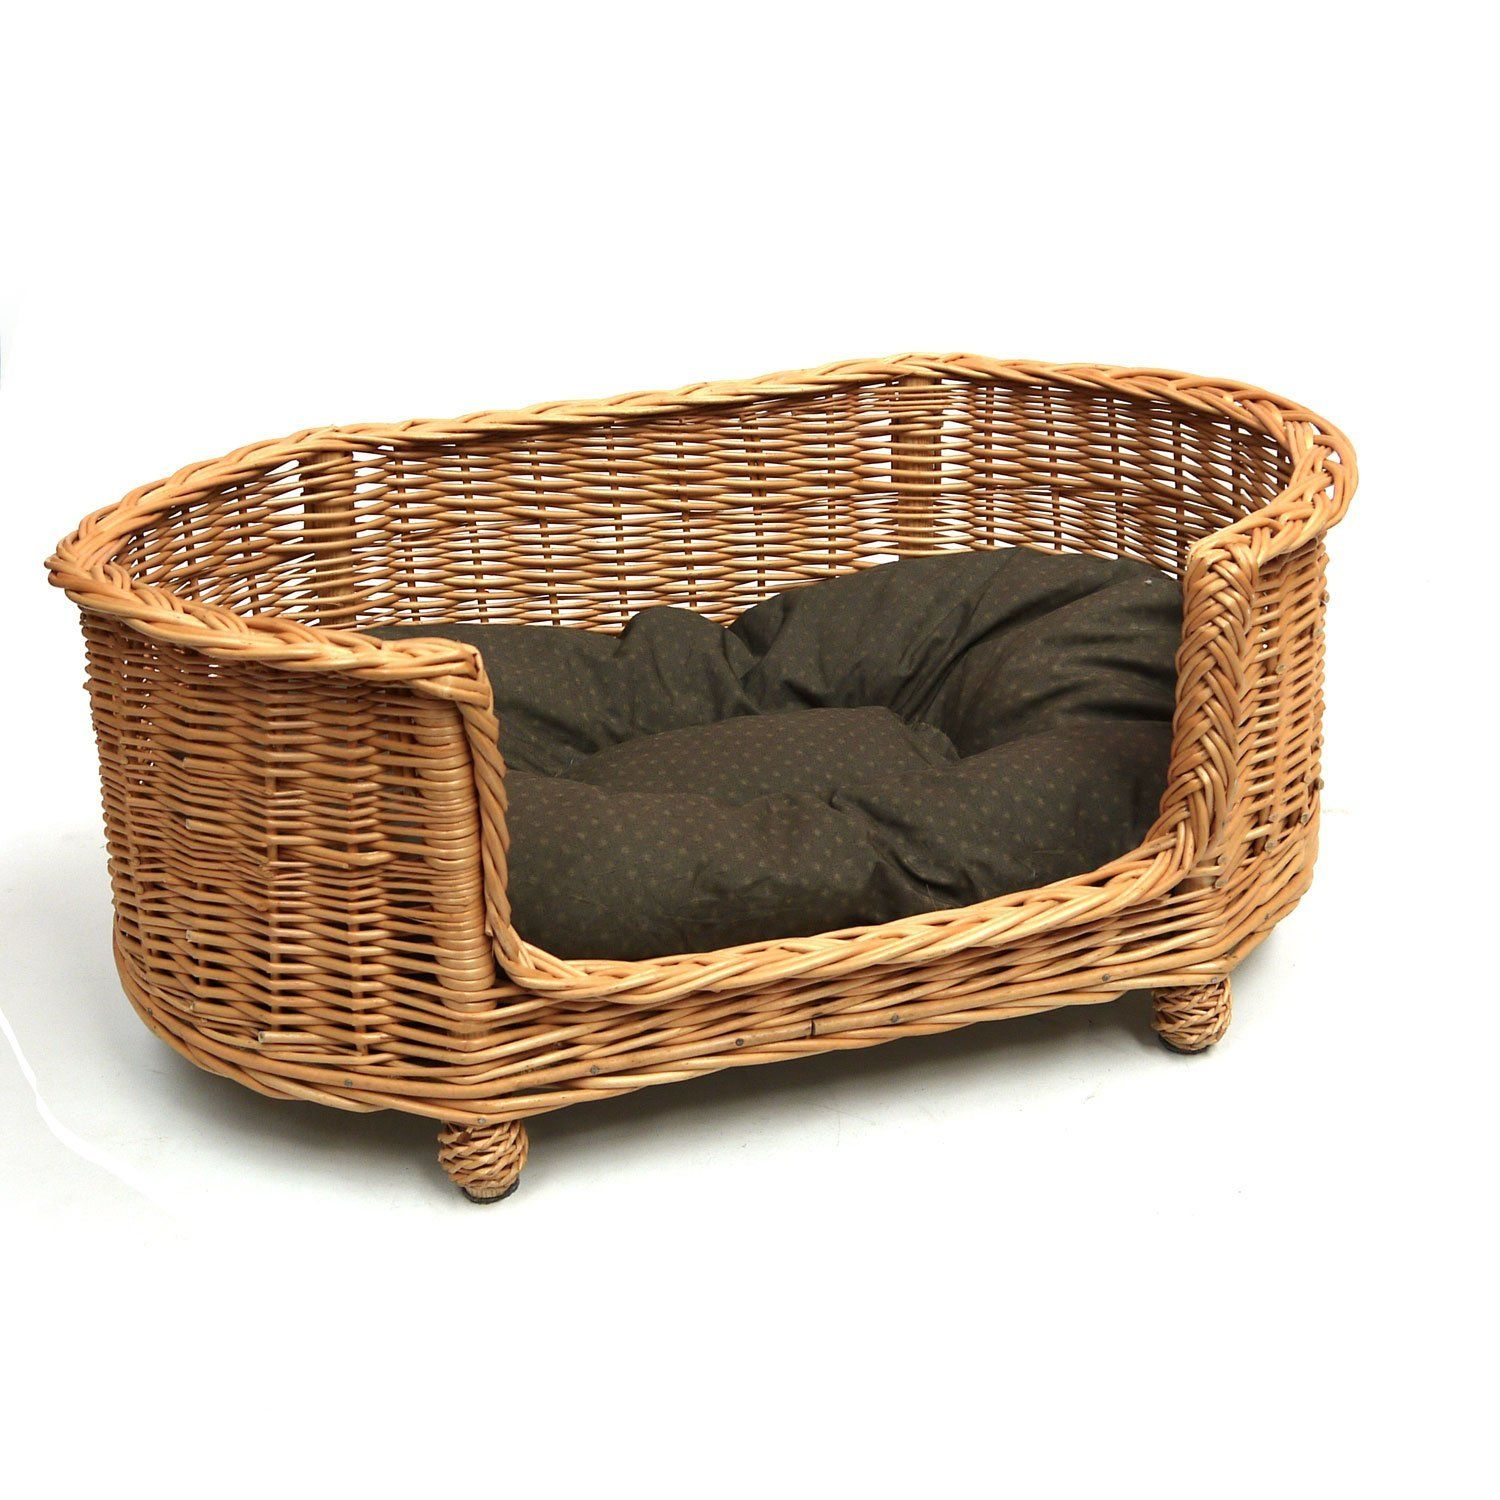 Big Sofa Vintage Look Luxury Large Wicker Dog Bed Basket Settee Pets Mimbre